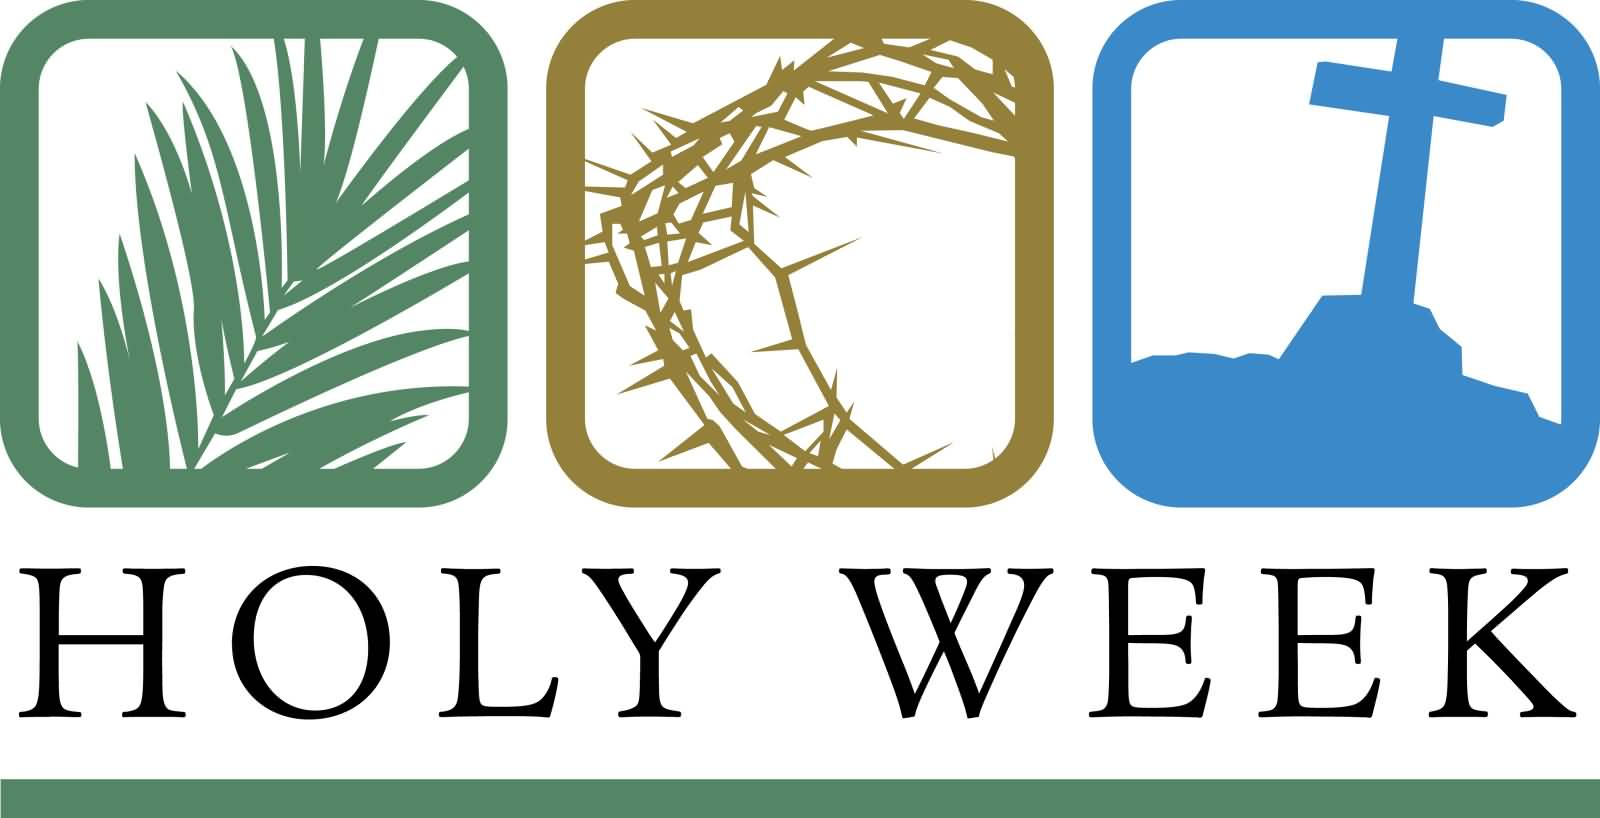 2018 clipart holy week. Most adorable greeting